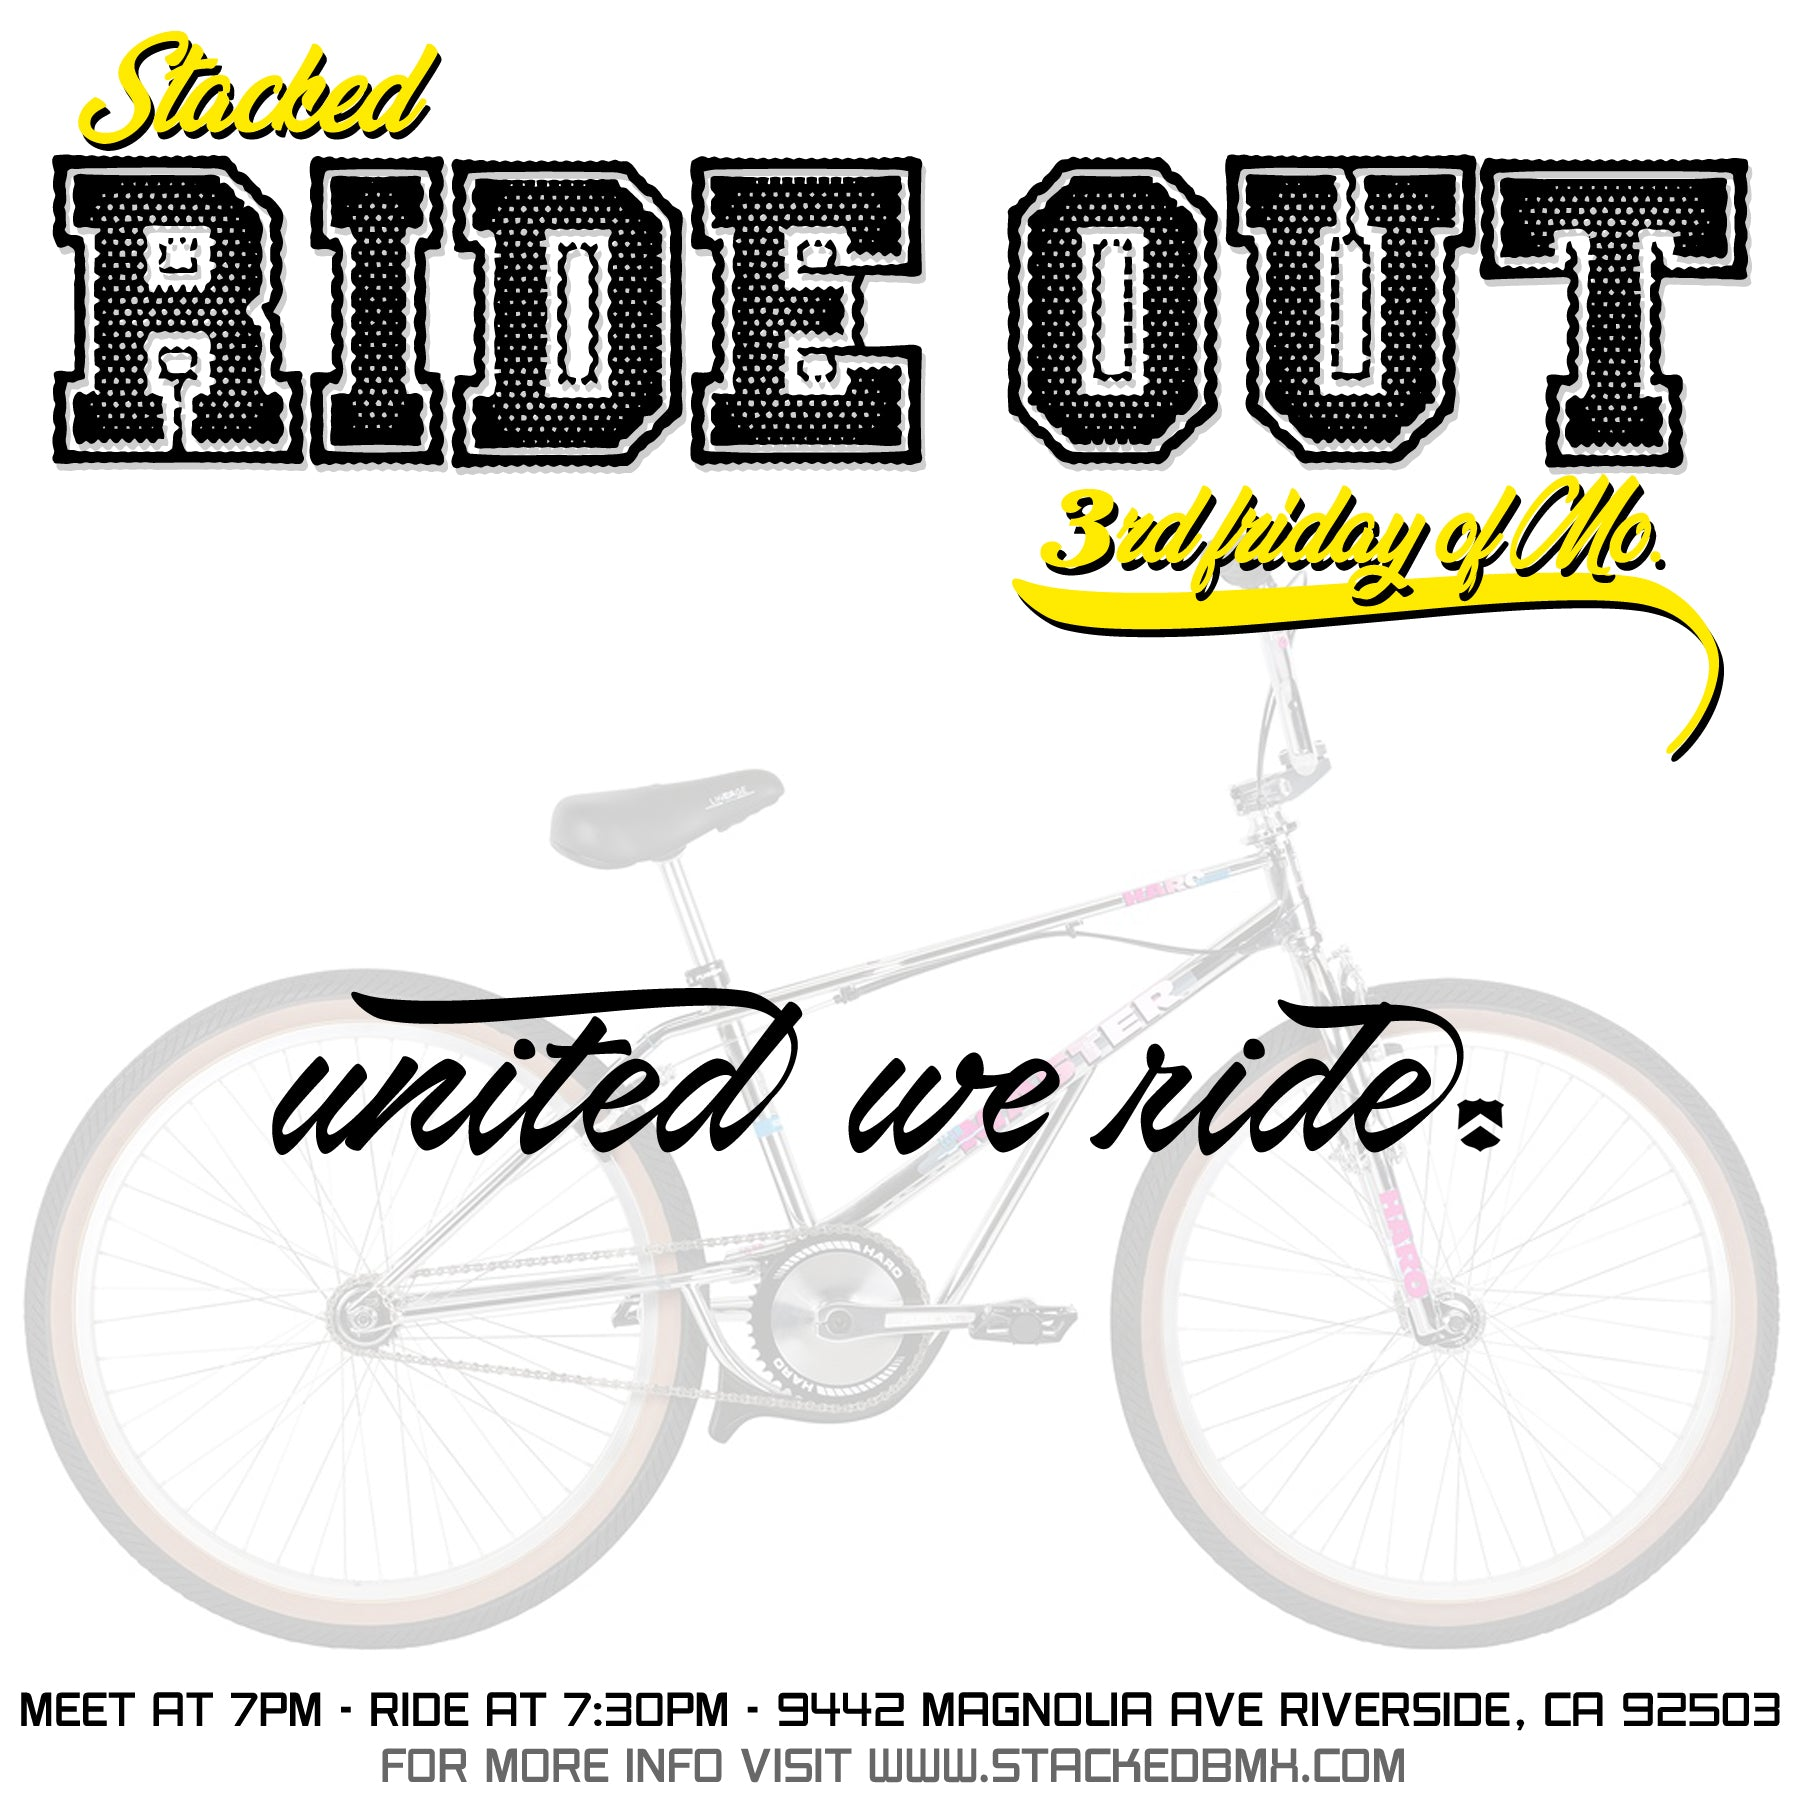 Stacked Ride out - at Stacked BMX Shop - June 21st - 7pm